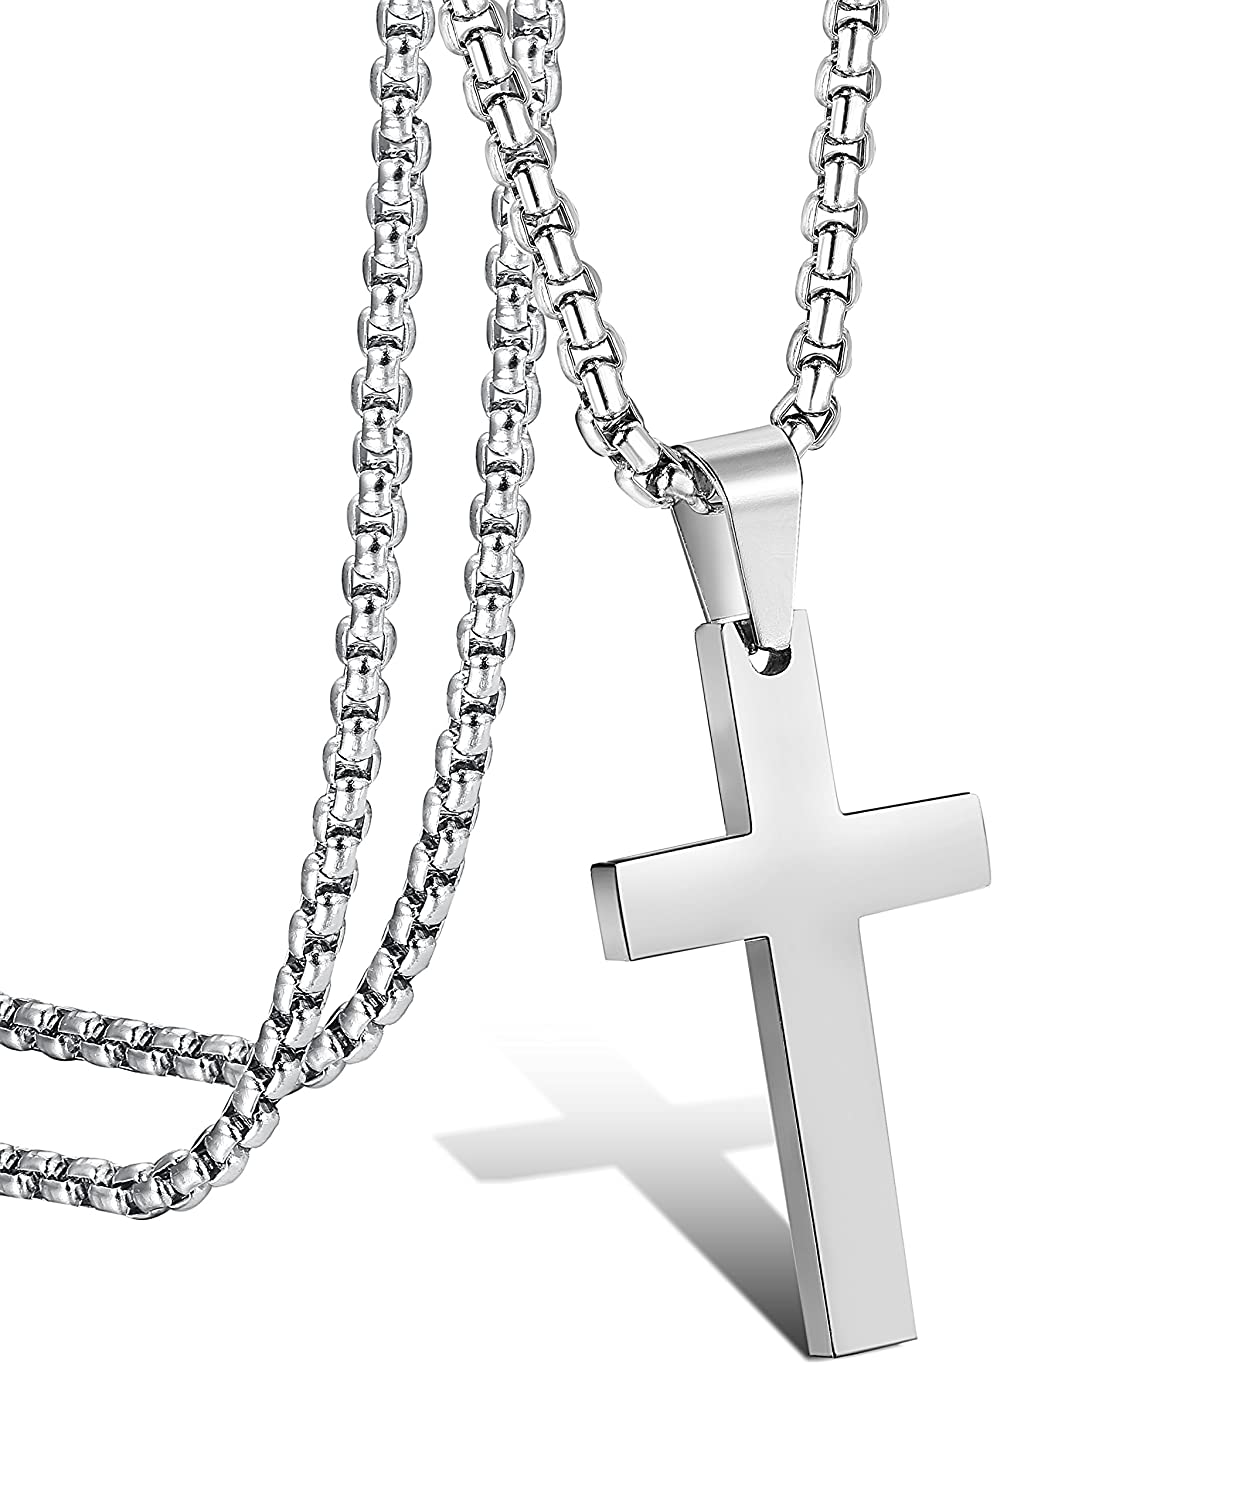 dd0adc44401018 Jstyle Jewelry Mens Simple Cross Necklace Stainless Steel Pendant for Women  22 Inch Small   Amazon.com